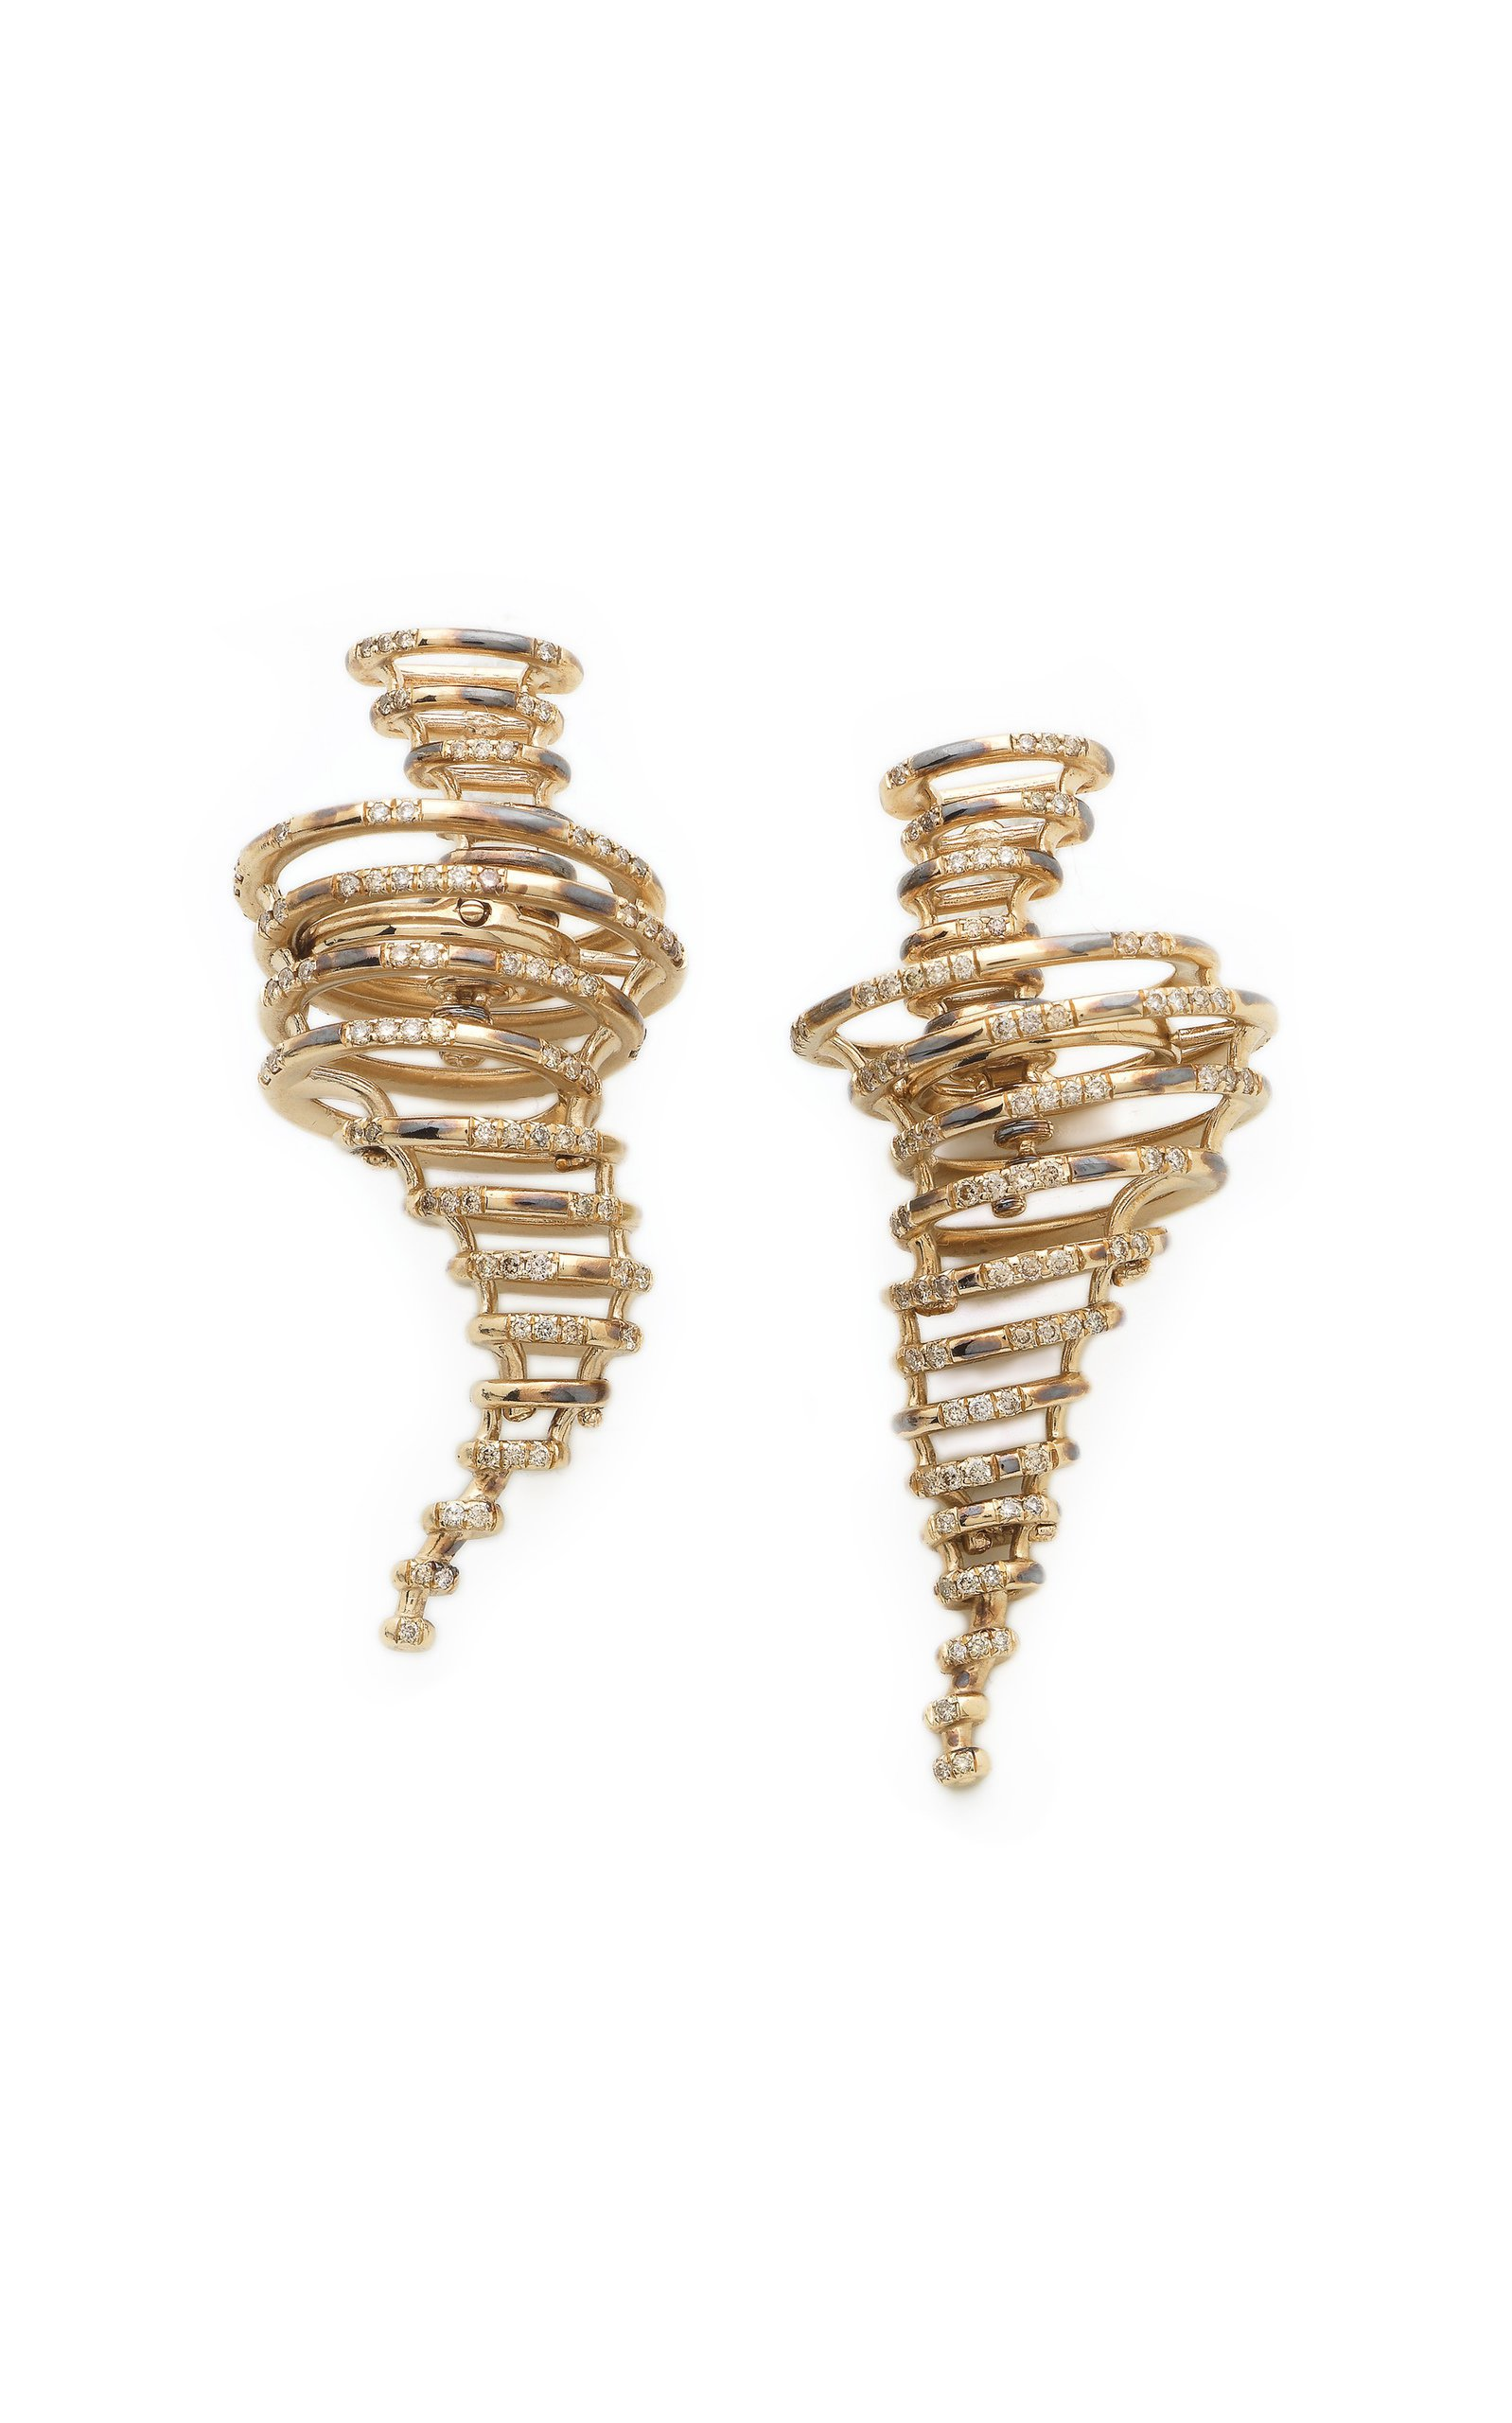 Bibi van der Velden Tornado Earrings